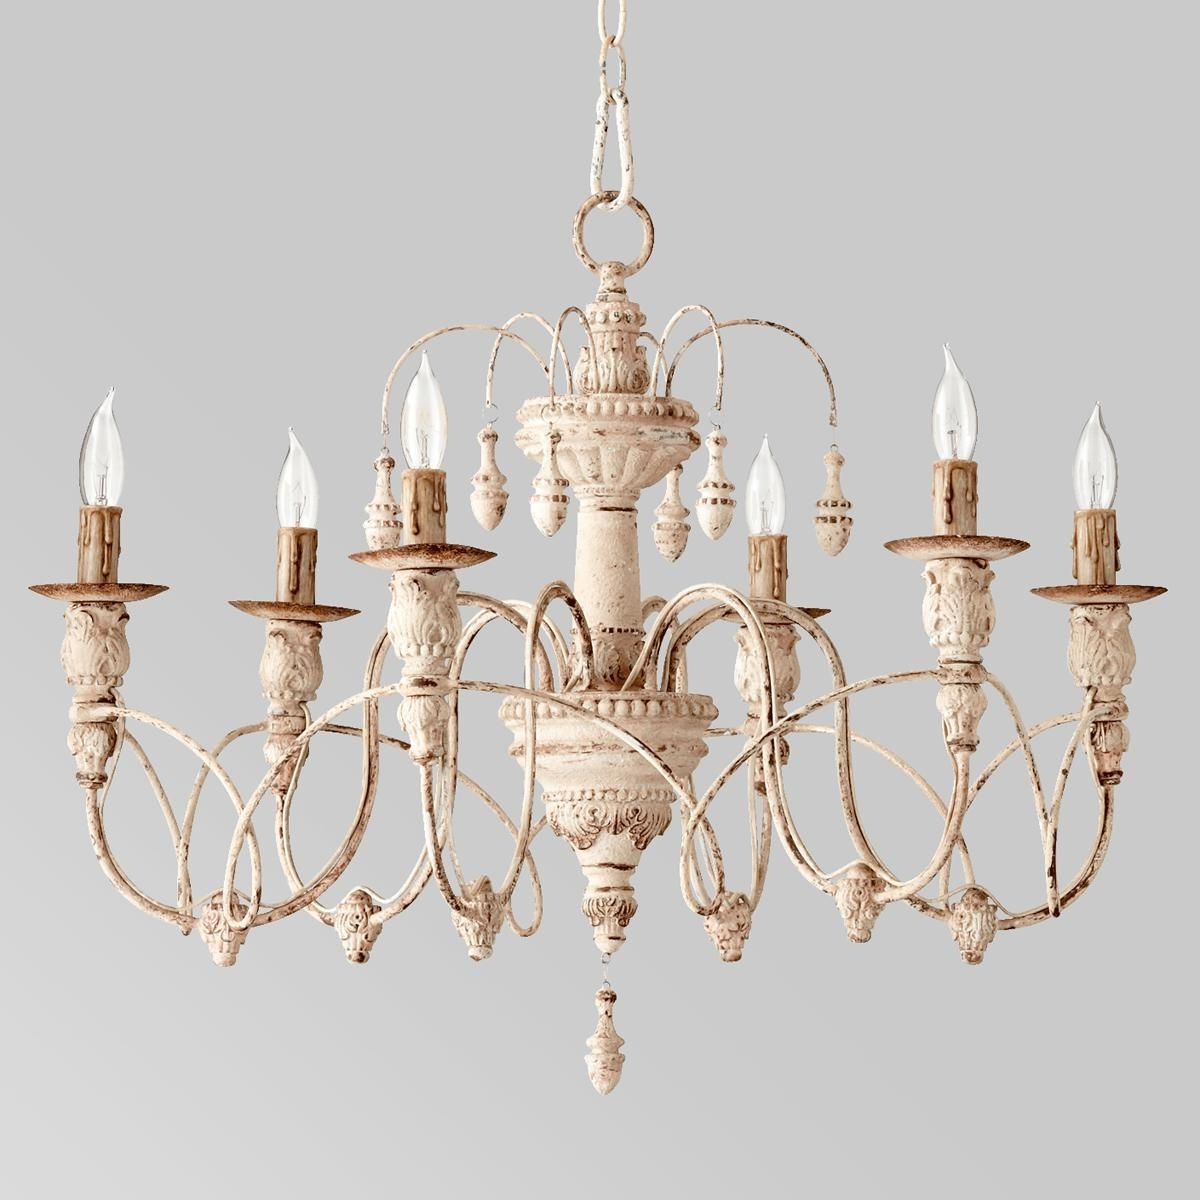 2018 Candle Look Chandeliers Throughout Gustavian Style White Chandelier (View 17 of 20)